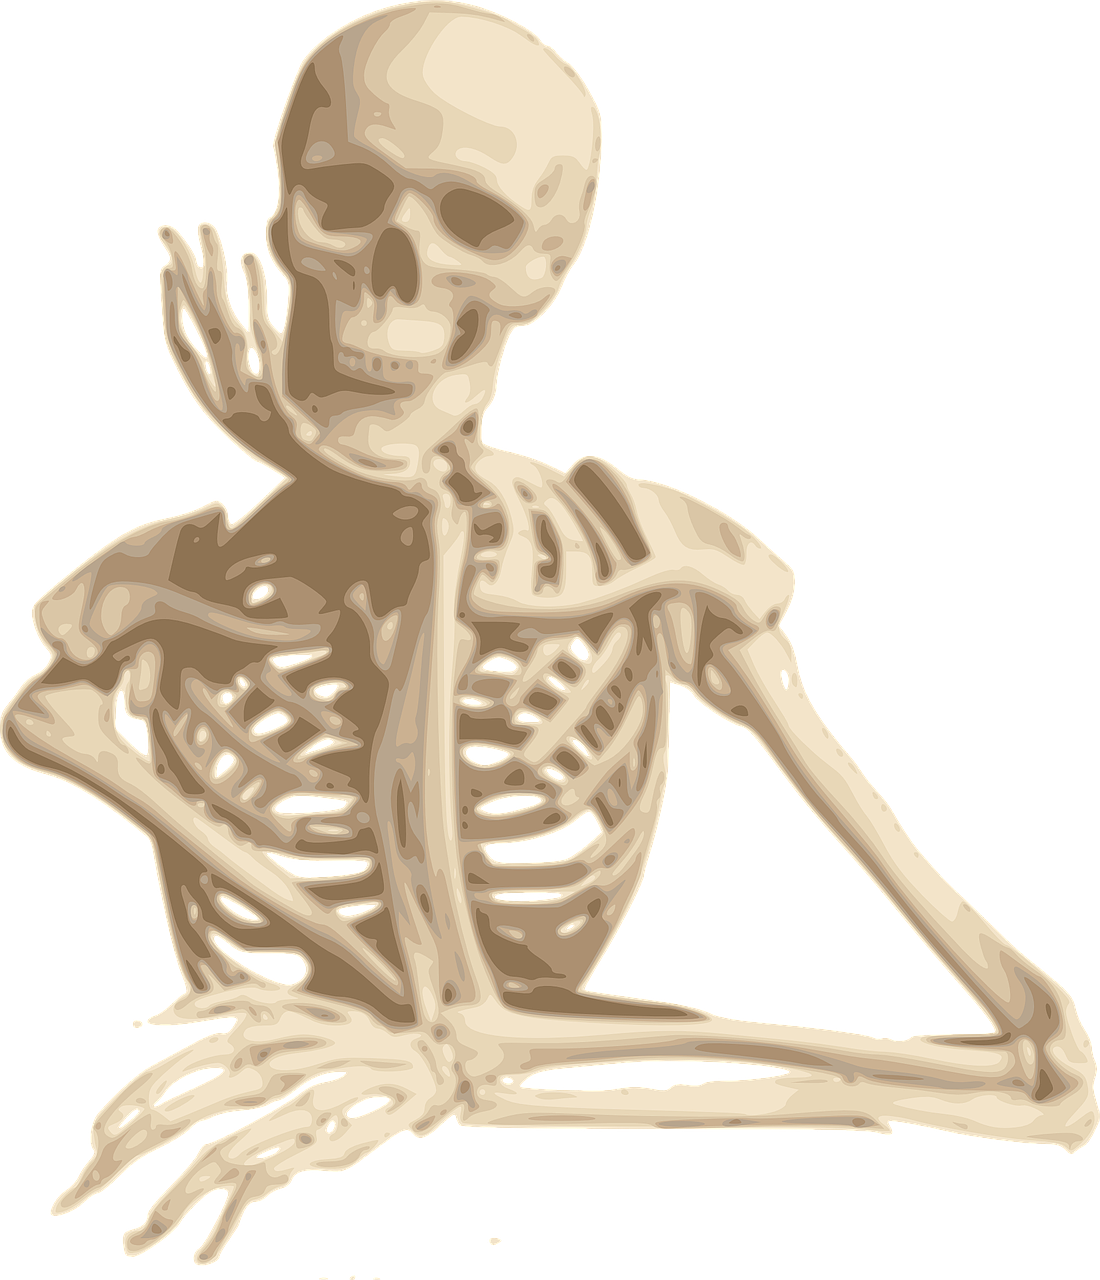 skeleton,smiling,sitting,cartoon,isolated,spooky,looking,character,bones,funny,free vector graphics,free pictures, free photos, free images, royalty free, free illustrations, public domain